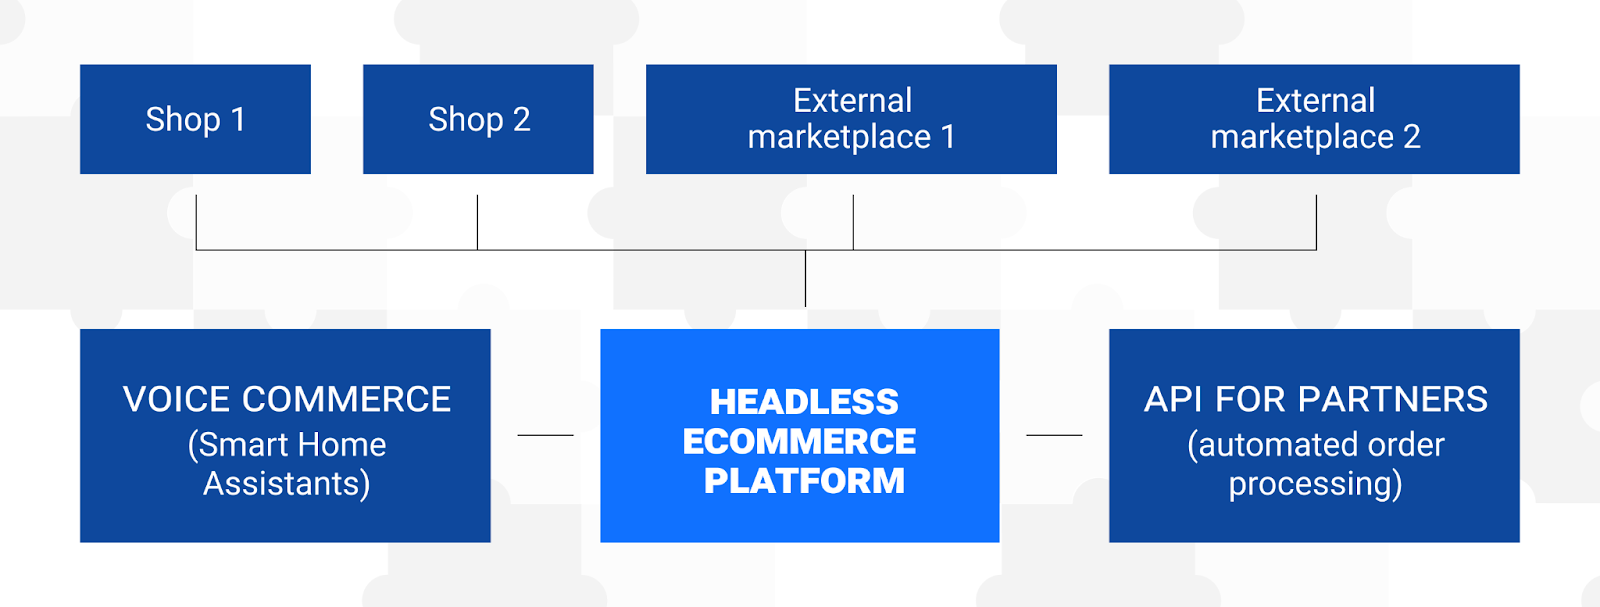 Omnichannel headless ecommerce platform with multiple touchpoints